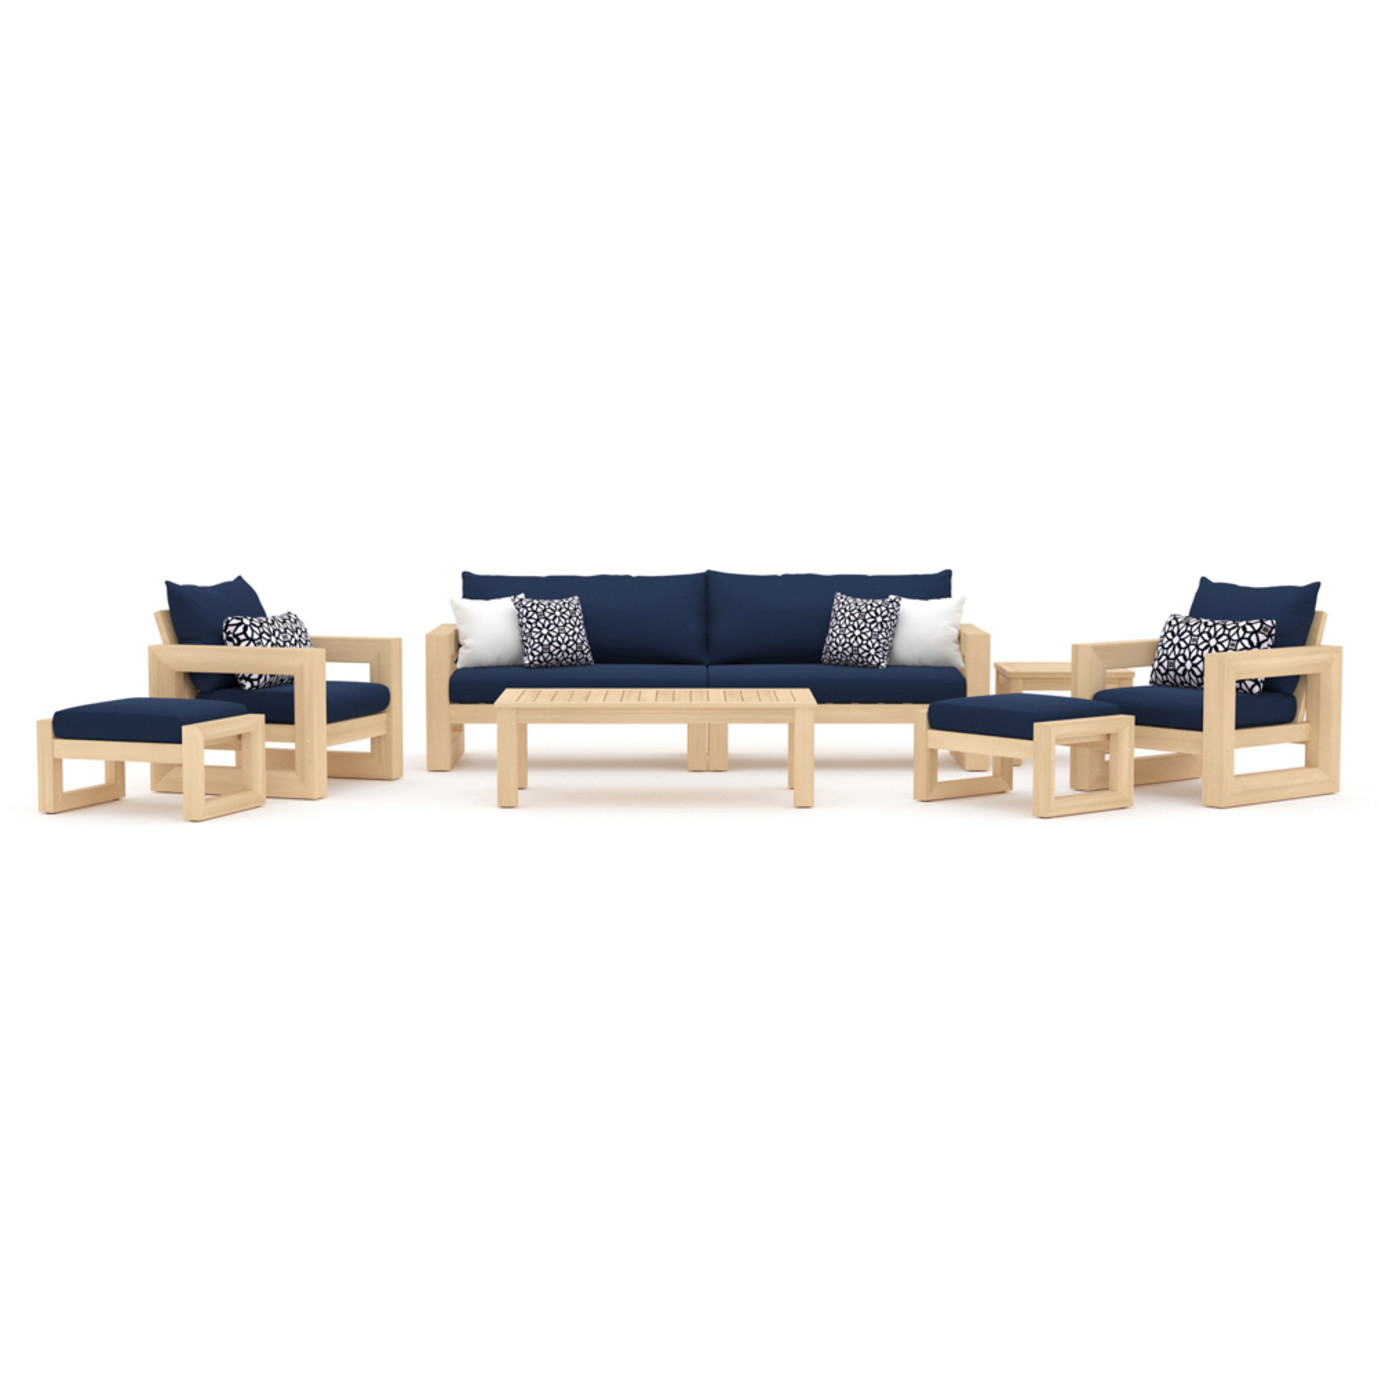 Benson 8pc Sofa & Club Chair Set - Navy Blue